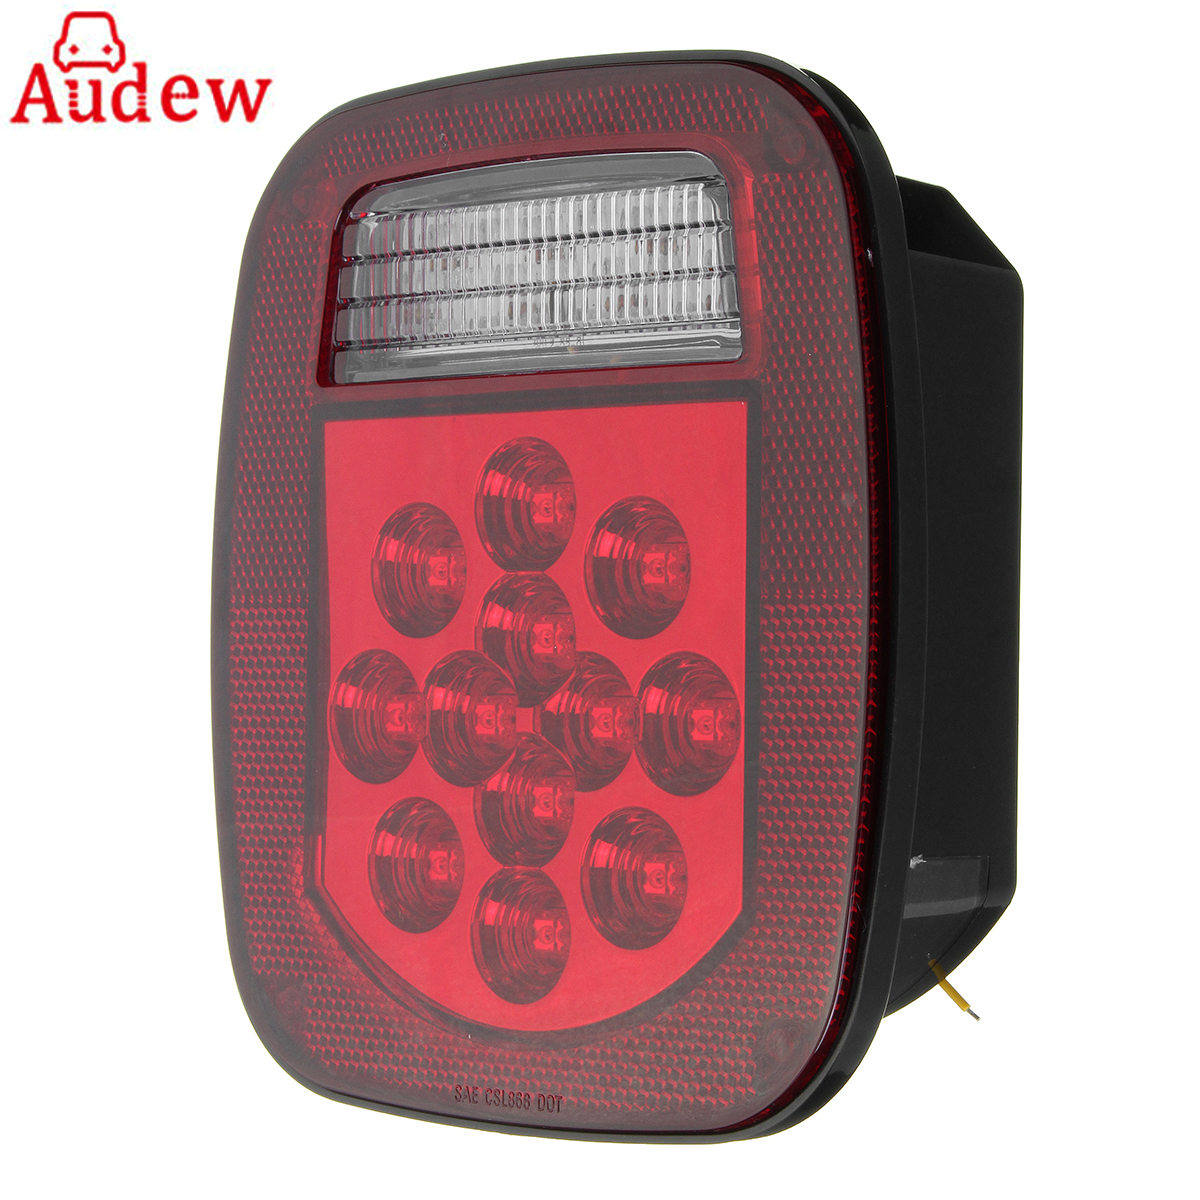 1Pcs 39 LED Car Rear Stop Turn Light Tail Reverse License Light for Truck/Trailer/Boat/Jeep TJ CJ YJ JK eonstime 2pcs 12v 16 led red white truck trailer boat stop turn tail light reverse light lamp waterproof